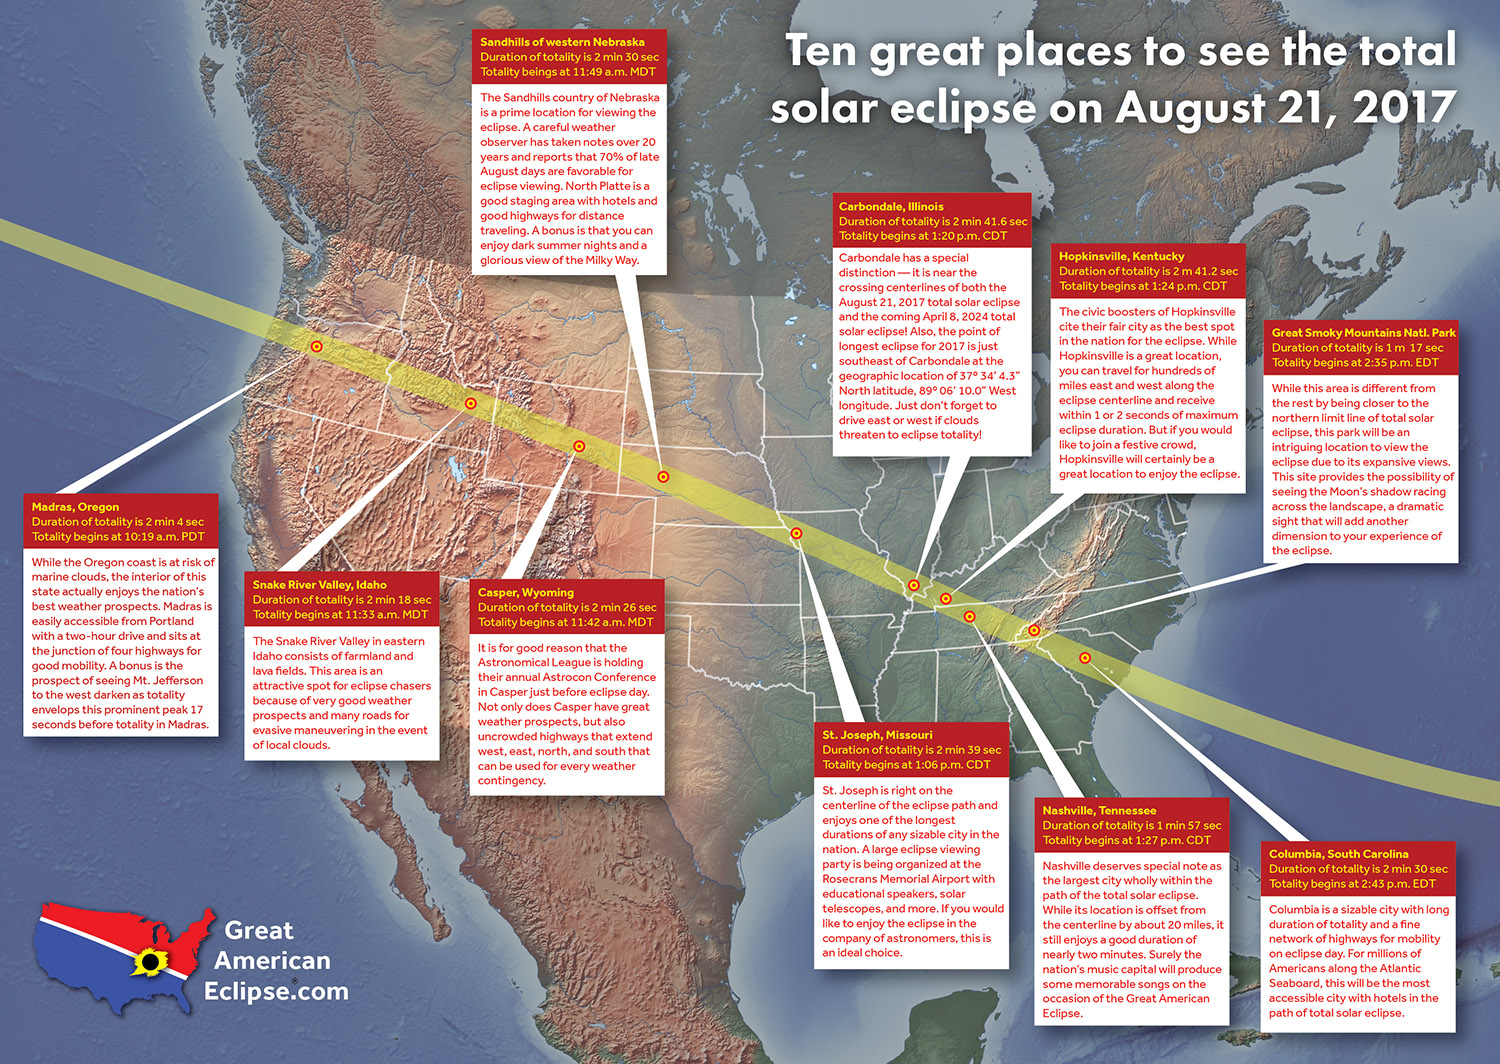 https://www.greatamericaneclipse.com/best-places-to-view/